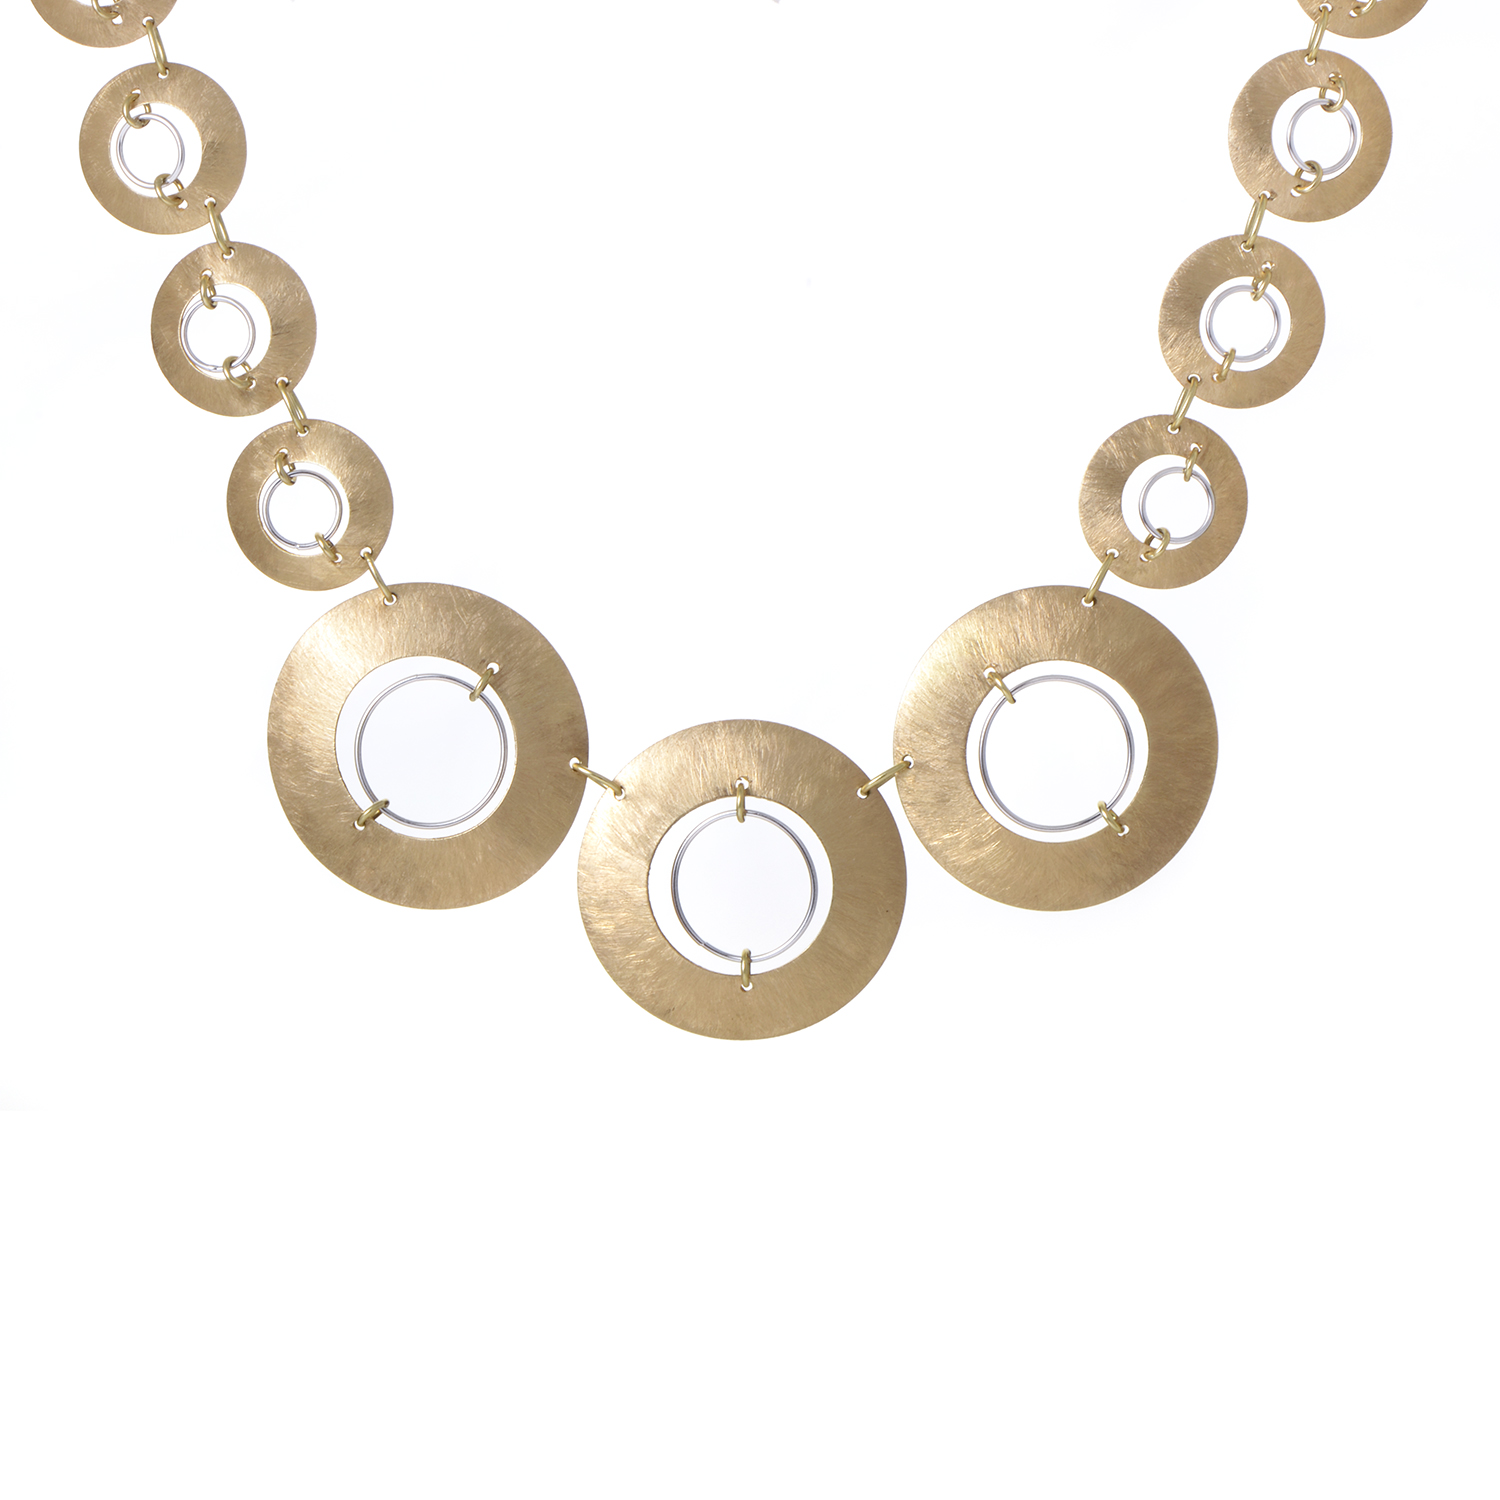 Women's Brushed 18K Yellow & White Gold Discs Collar Necklace